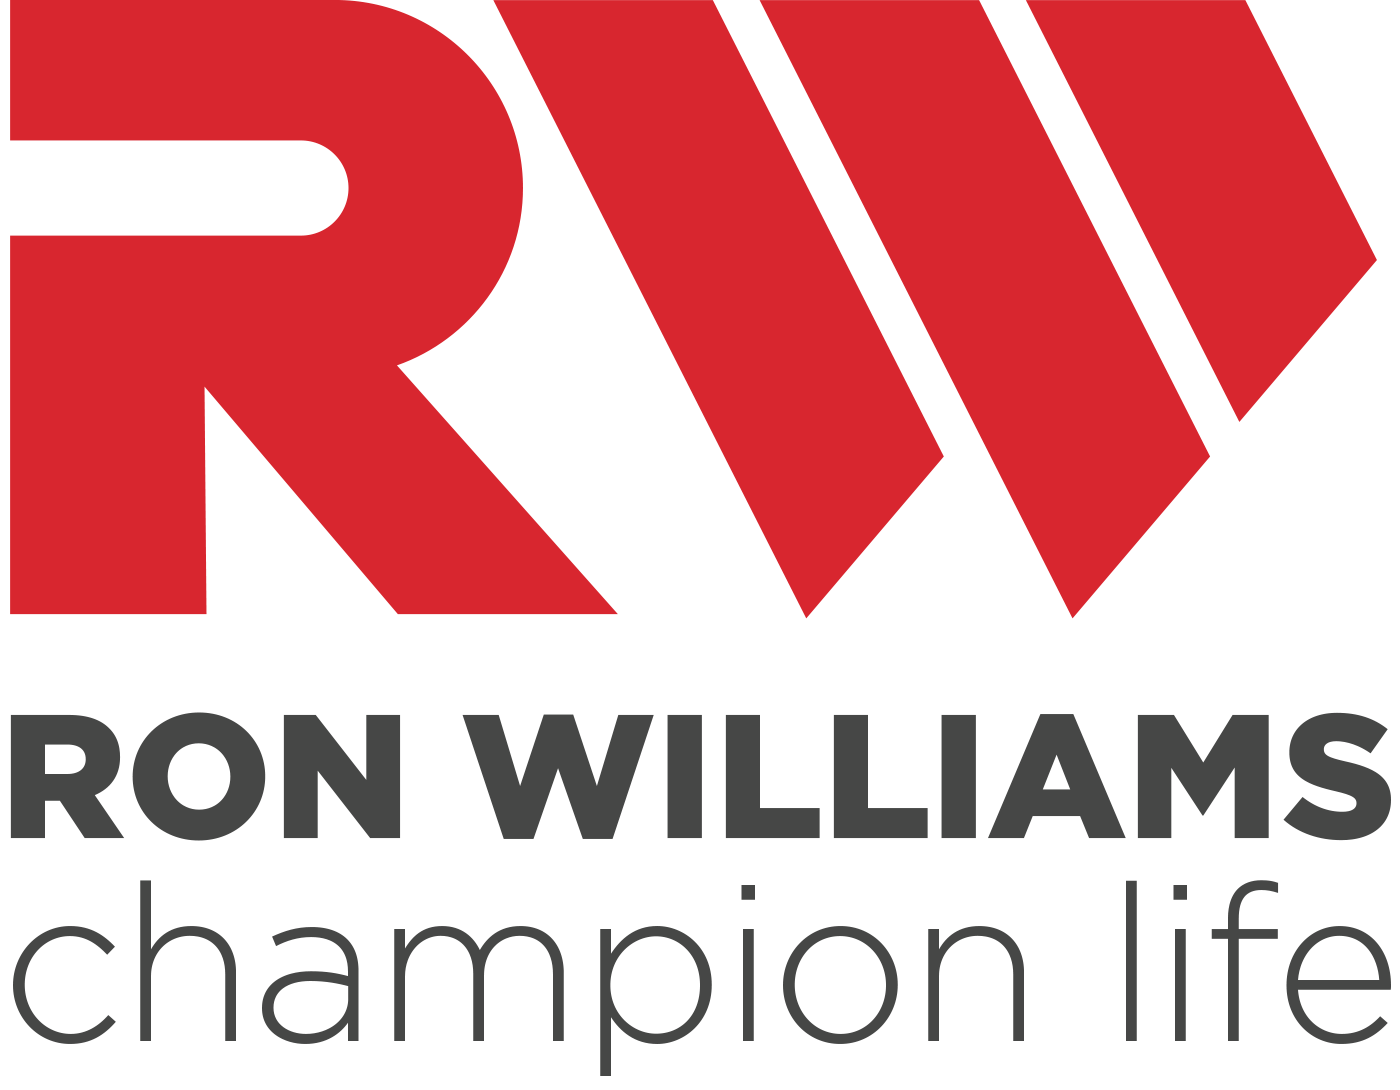 Champion Life by Ron Williams